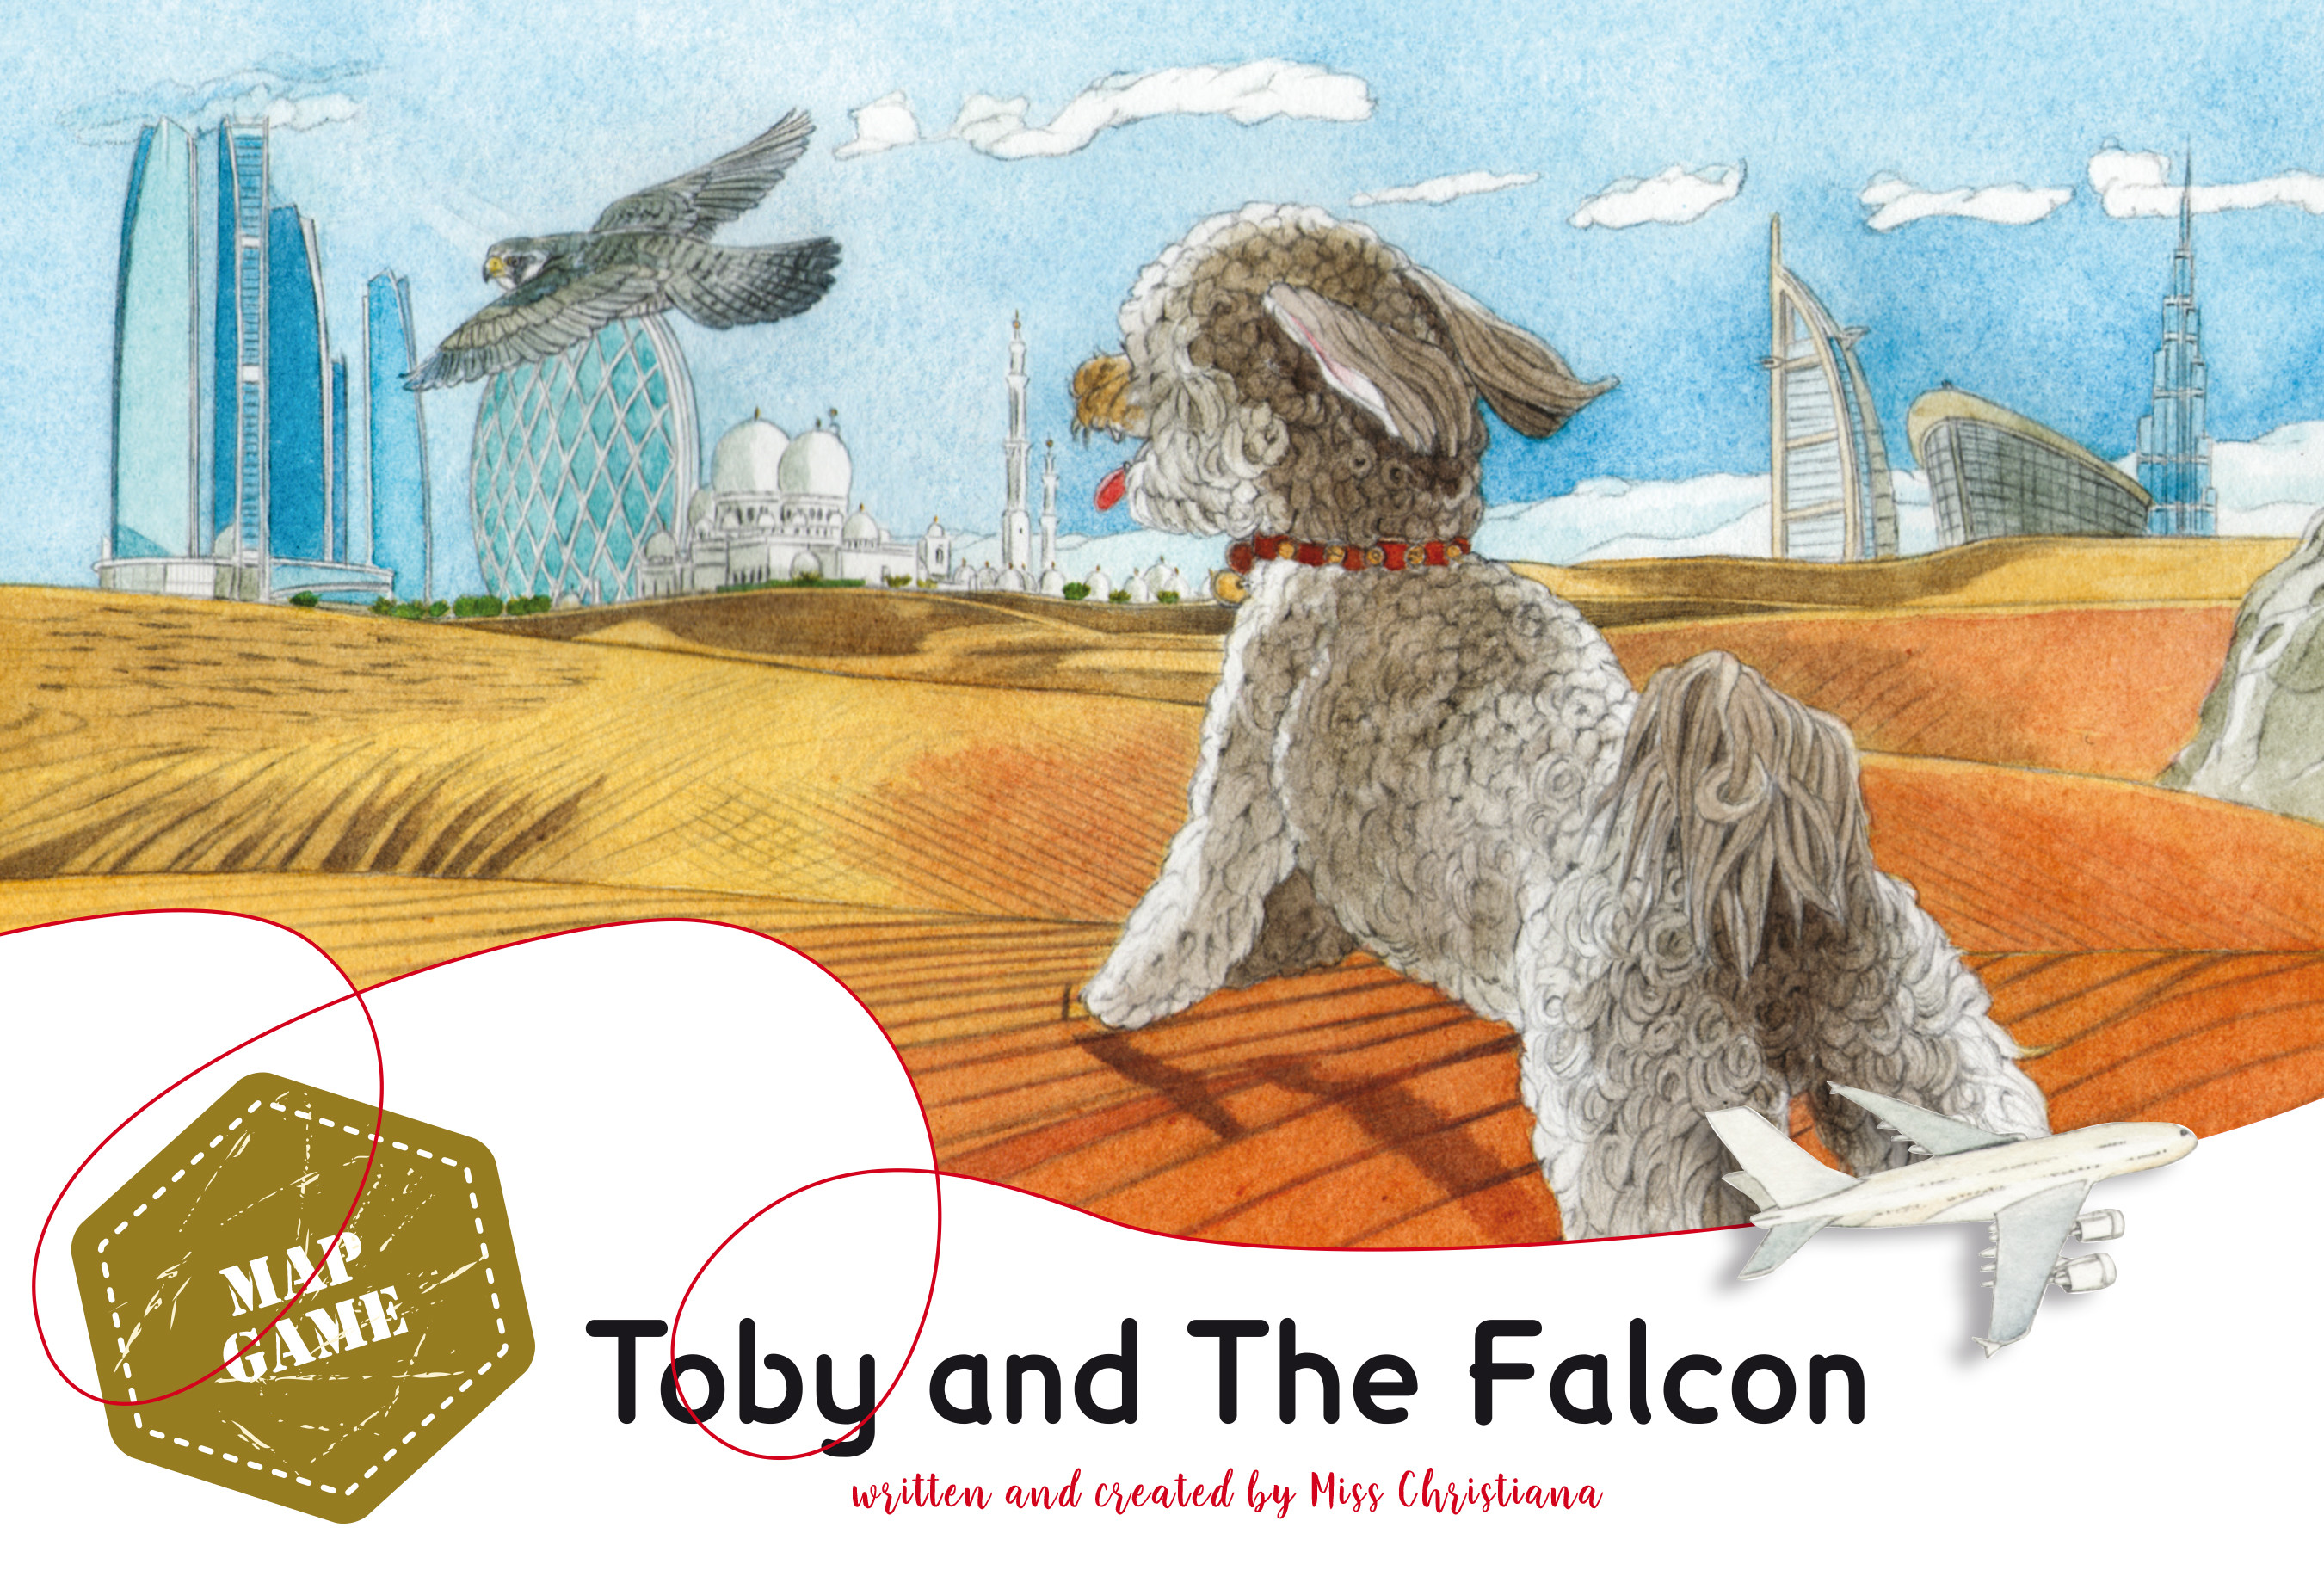 Toby and The Falcon